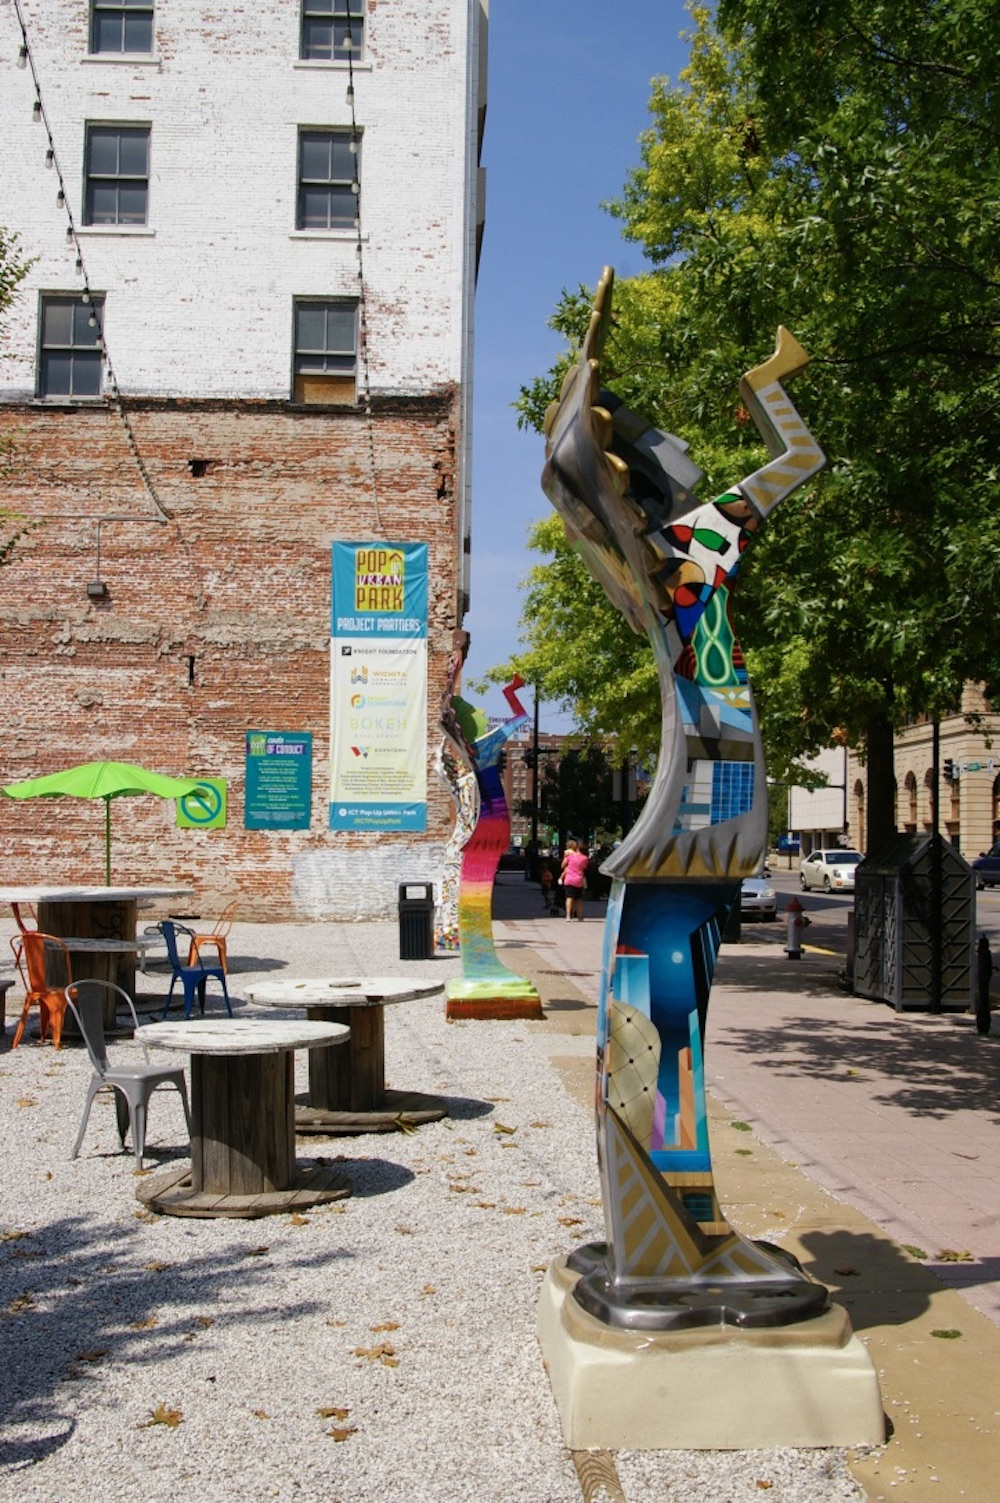 Decorated Keeper of the Plains statue at the ICT Pop-Up Urban Park in downtown Wichita, Kansas